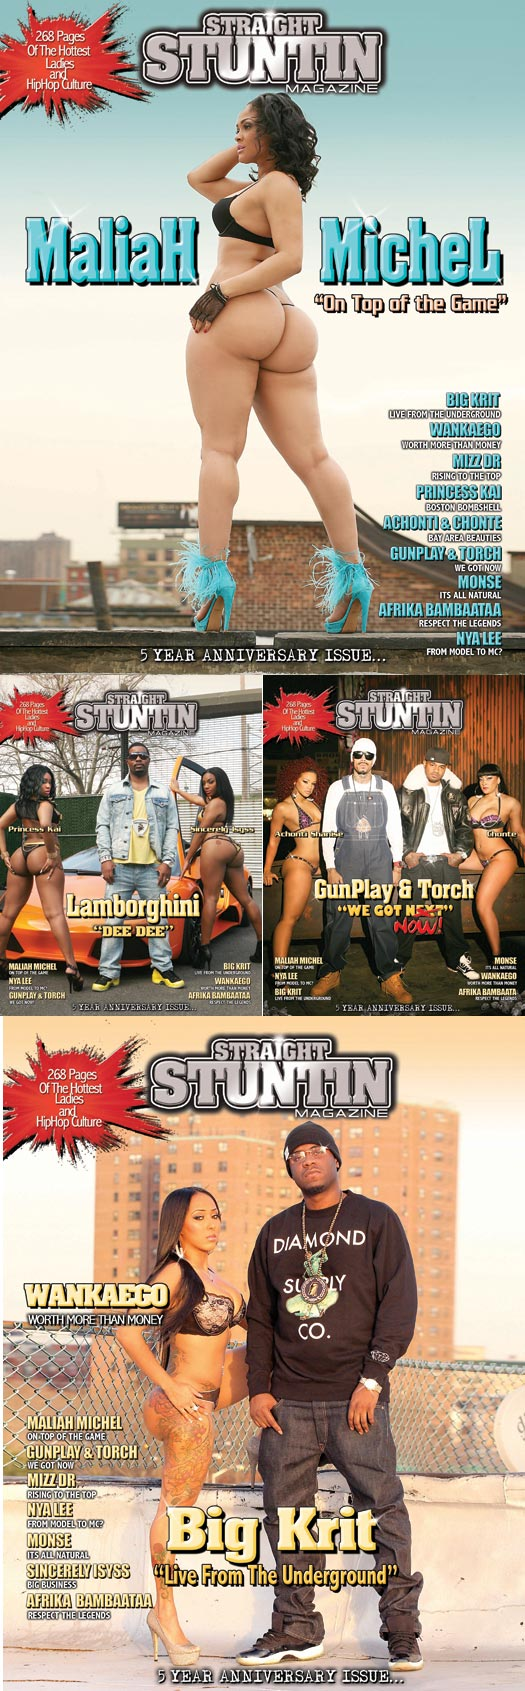 Necka Beckett in latest issue of Straight Stuntin - Urban Soul Photography